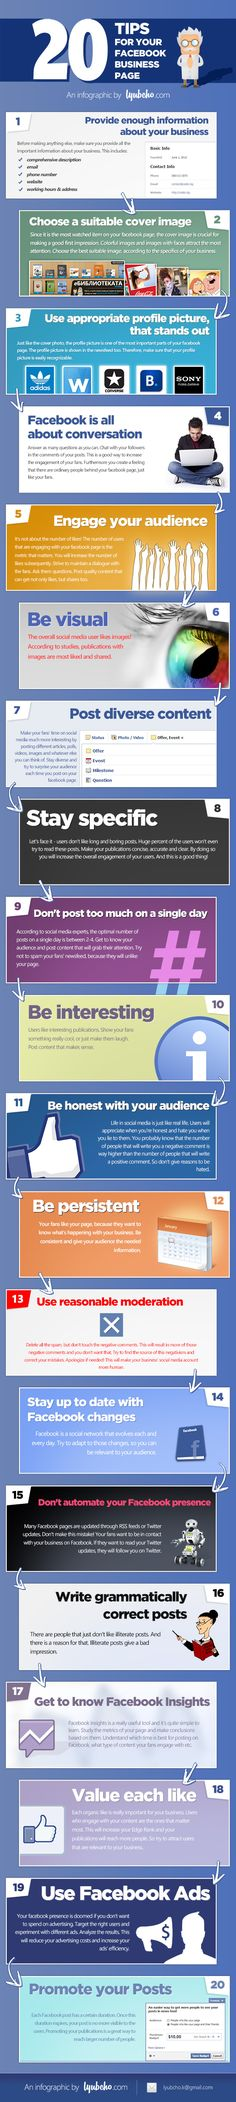 20 Facebook Tips to Enhance Your Page Presence [Infographic]